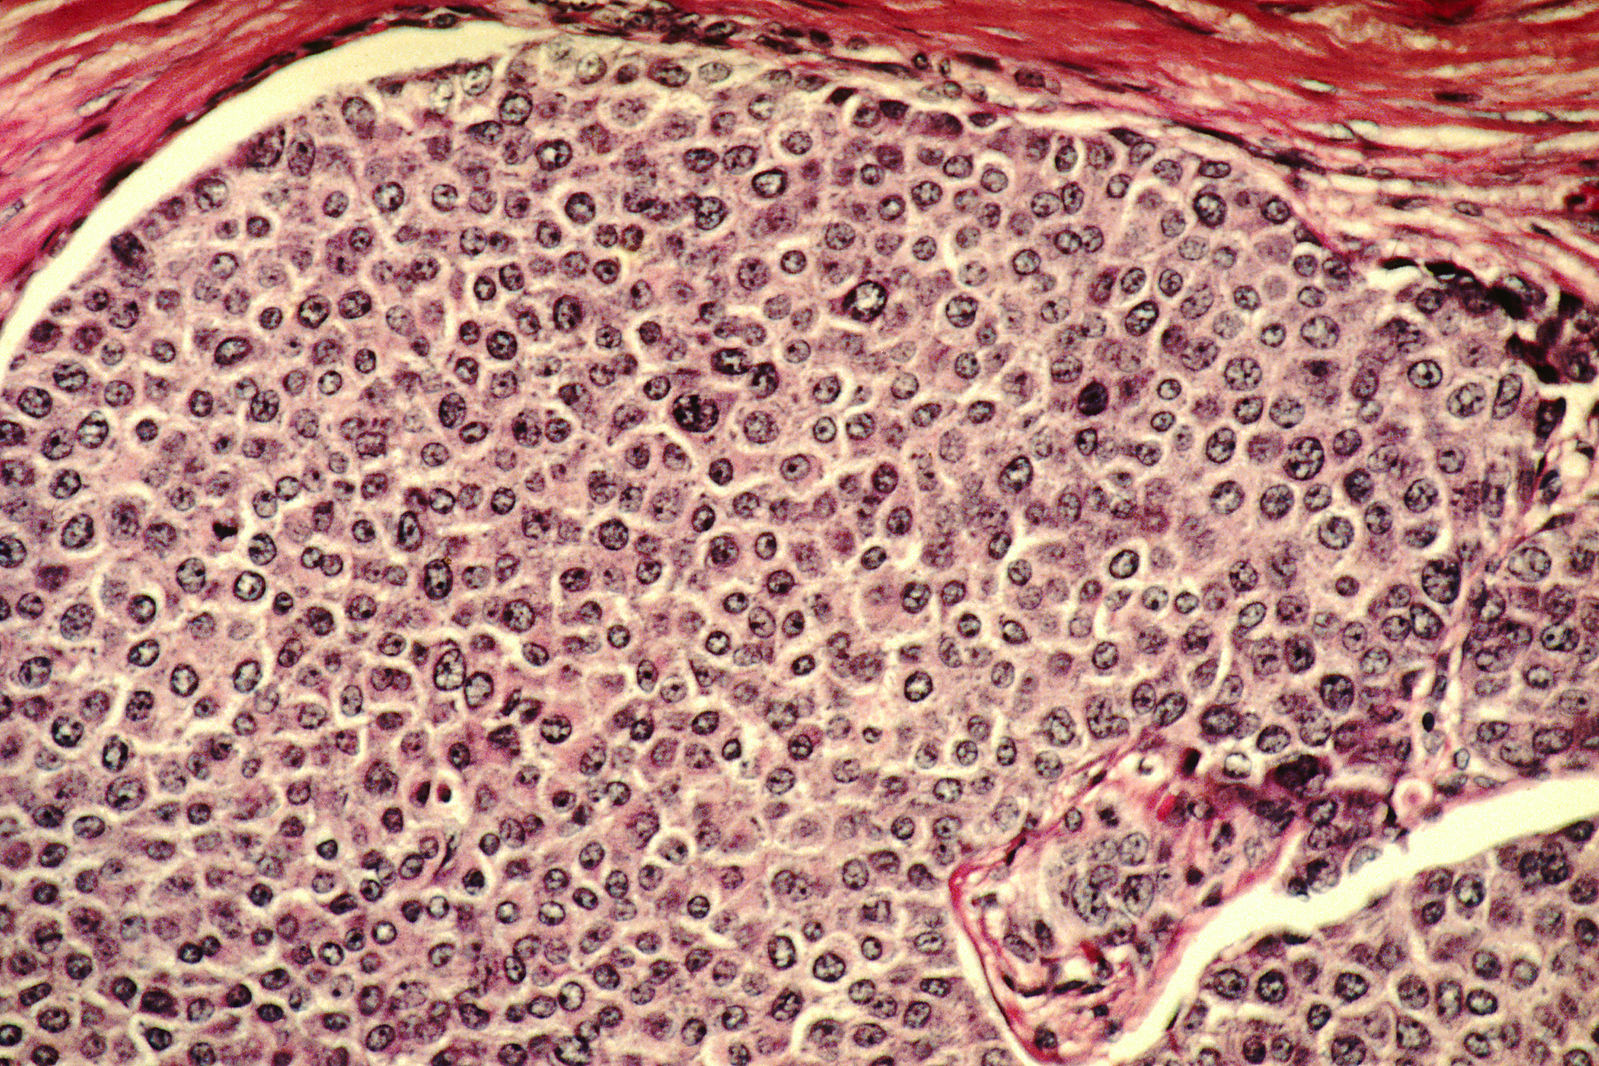 1599px-Breast_cancer_cells (2)